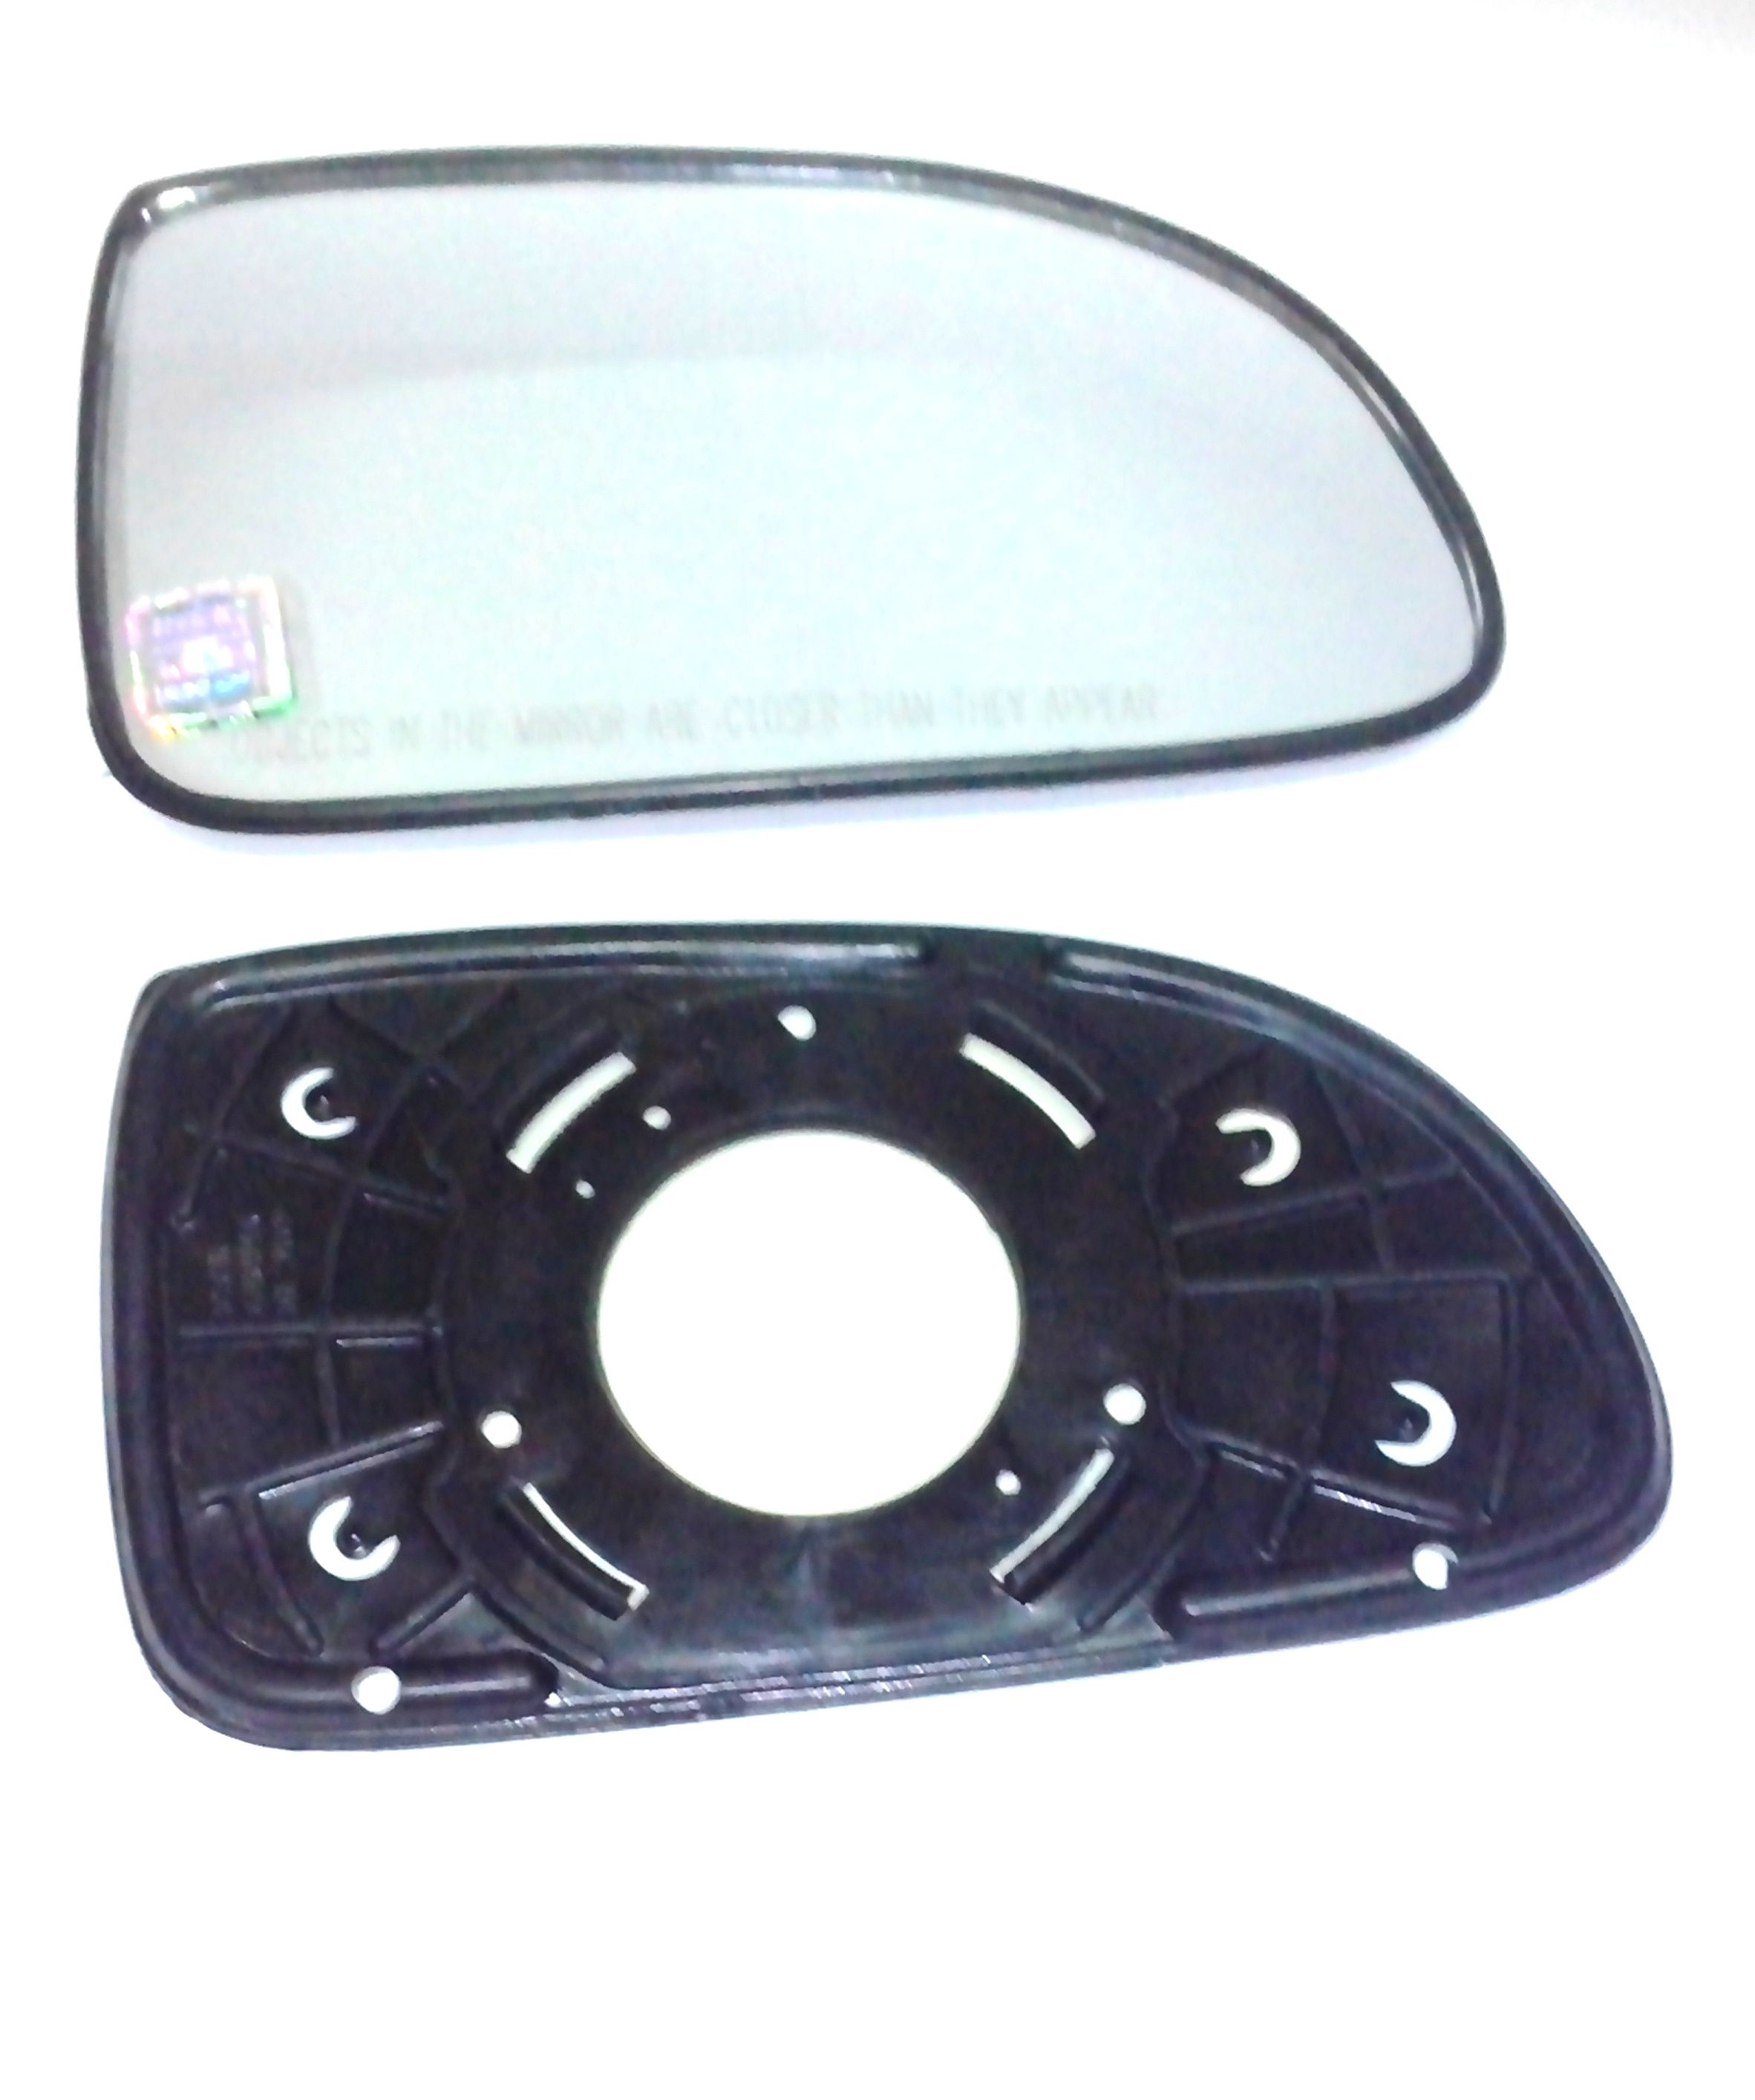 MANTRA-CONVEX MIRROR PLATES (SUB MIRROR PLATES) FOR TATA SAFARI O/M LEFT SIDE